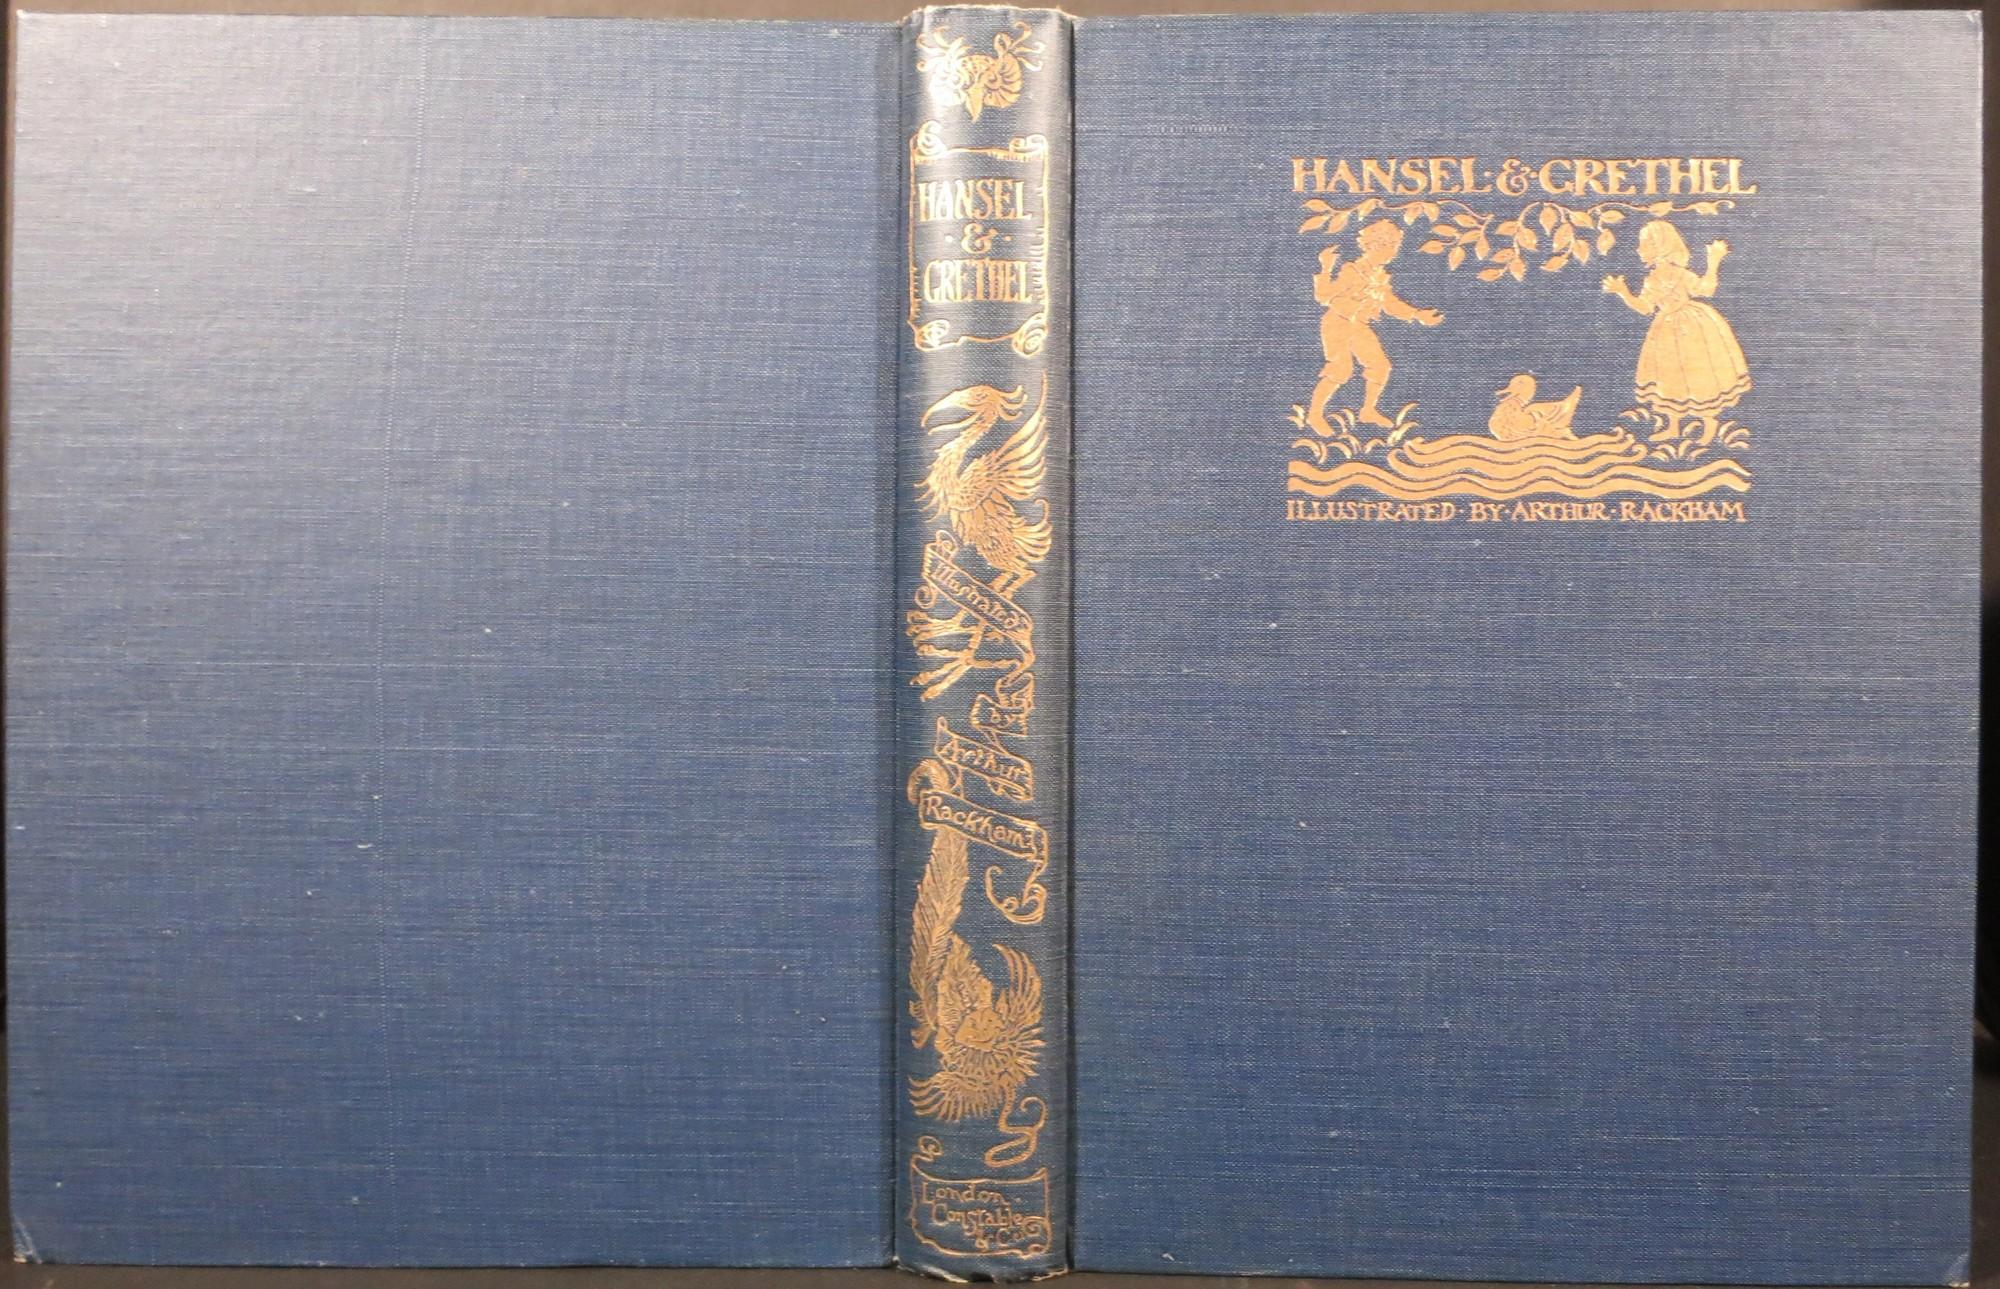 HANSEL & GRETHEL & OTHER TALES BY: Brothers Grimm